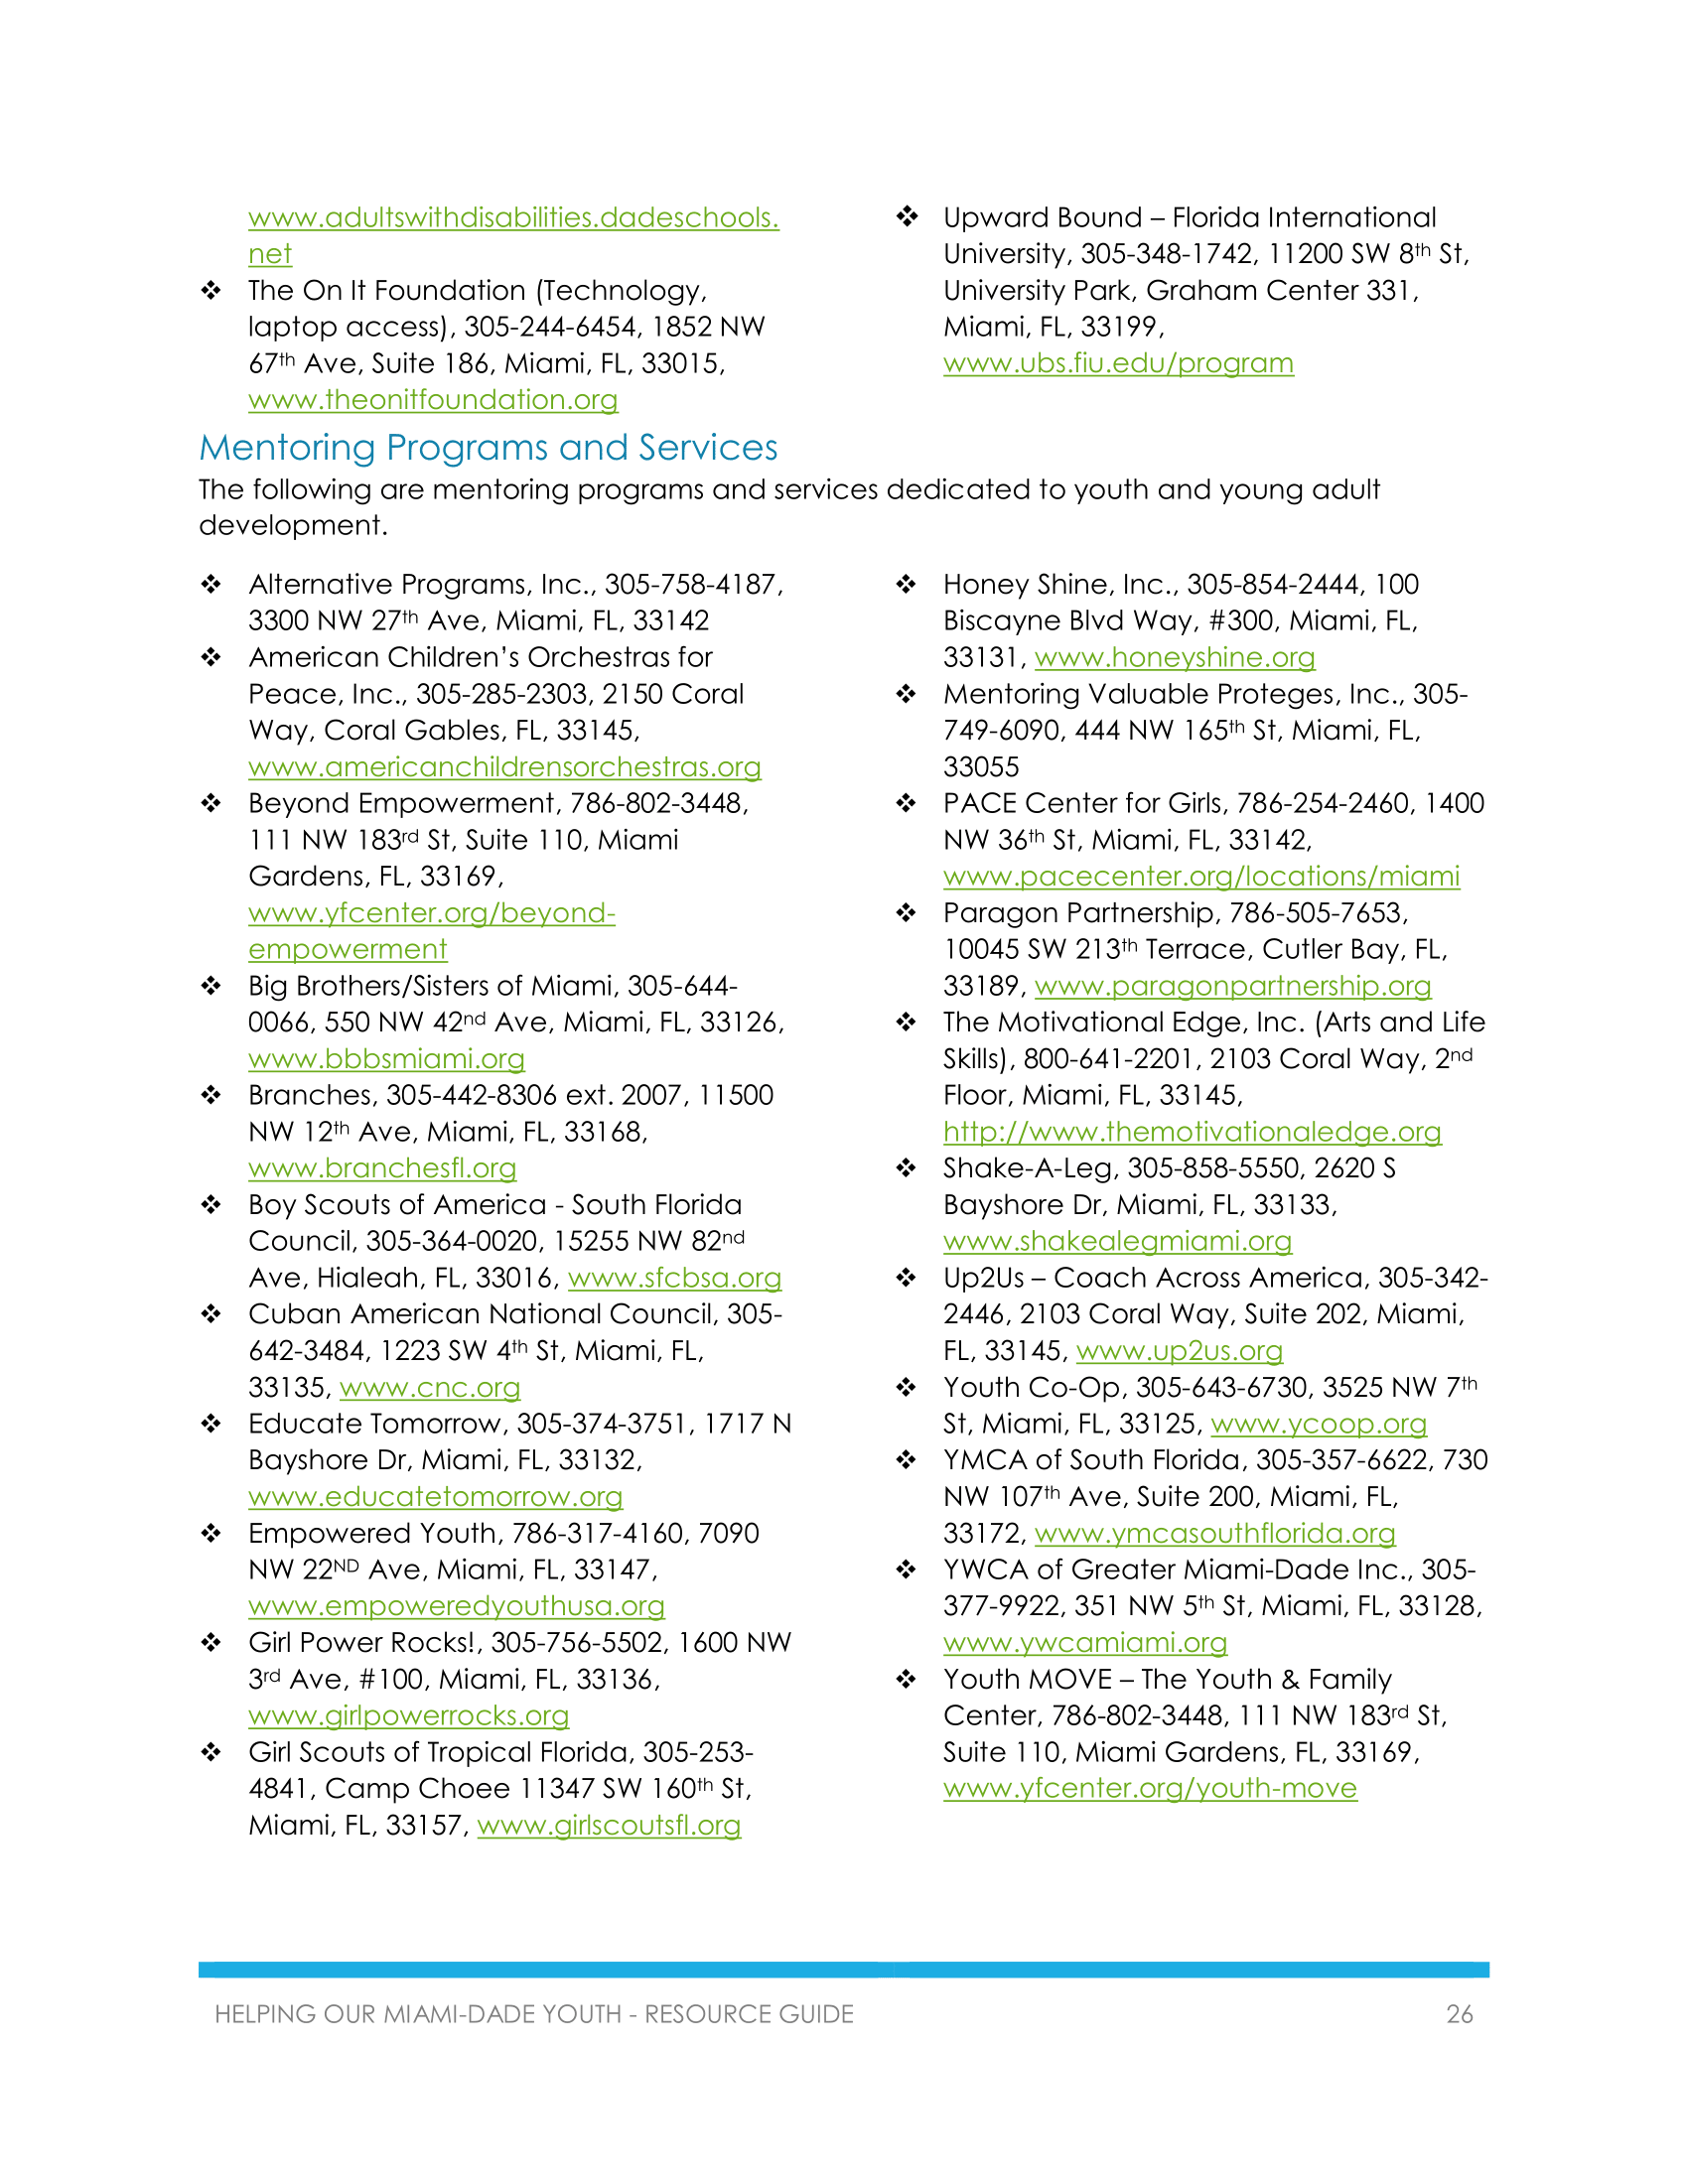 Youth Resource Guide - May 2018-31.png